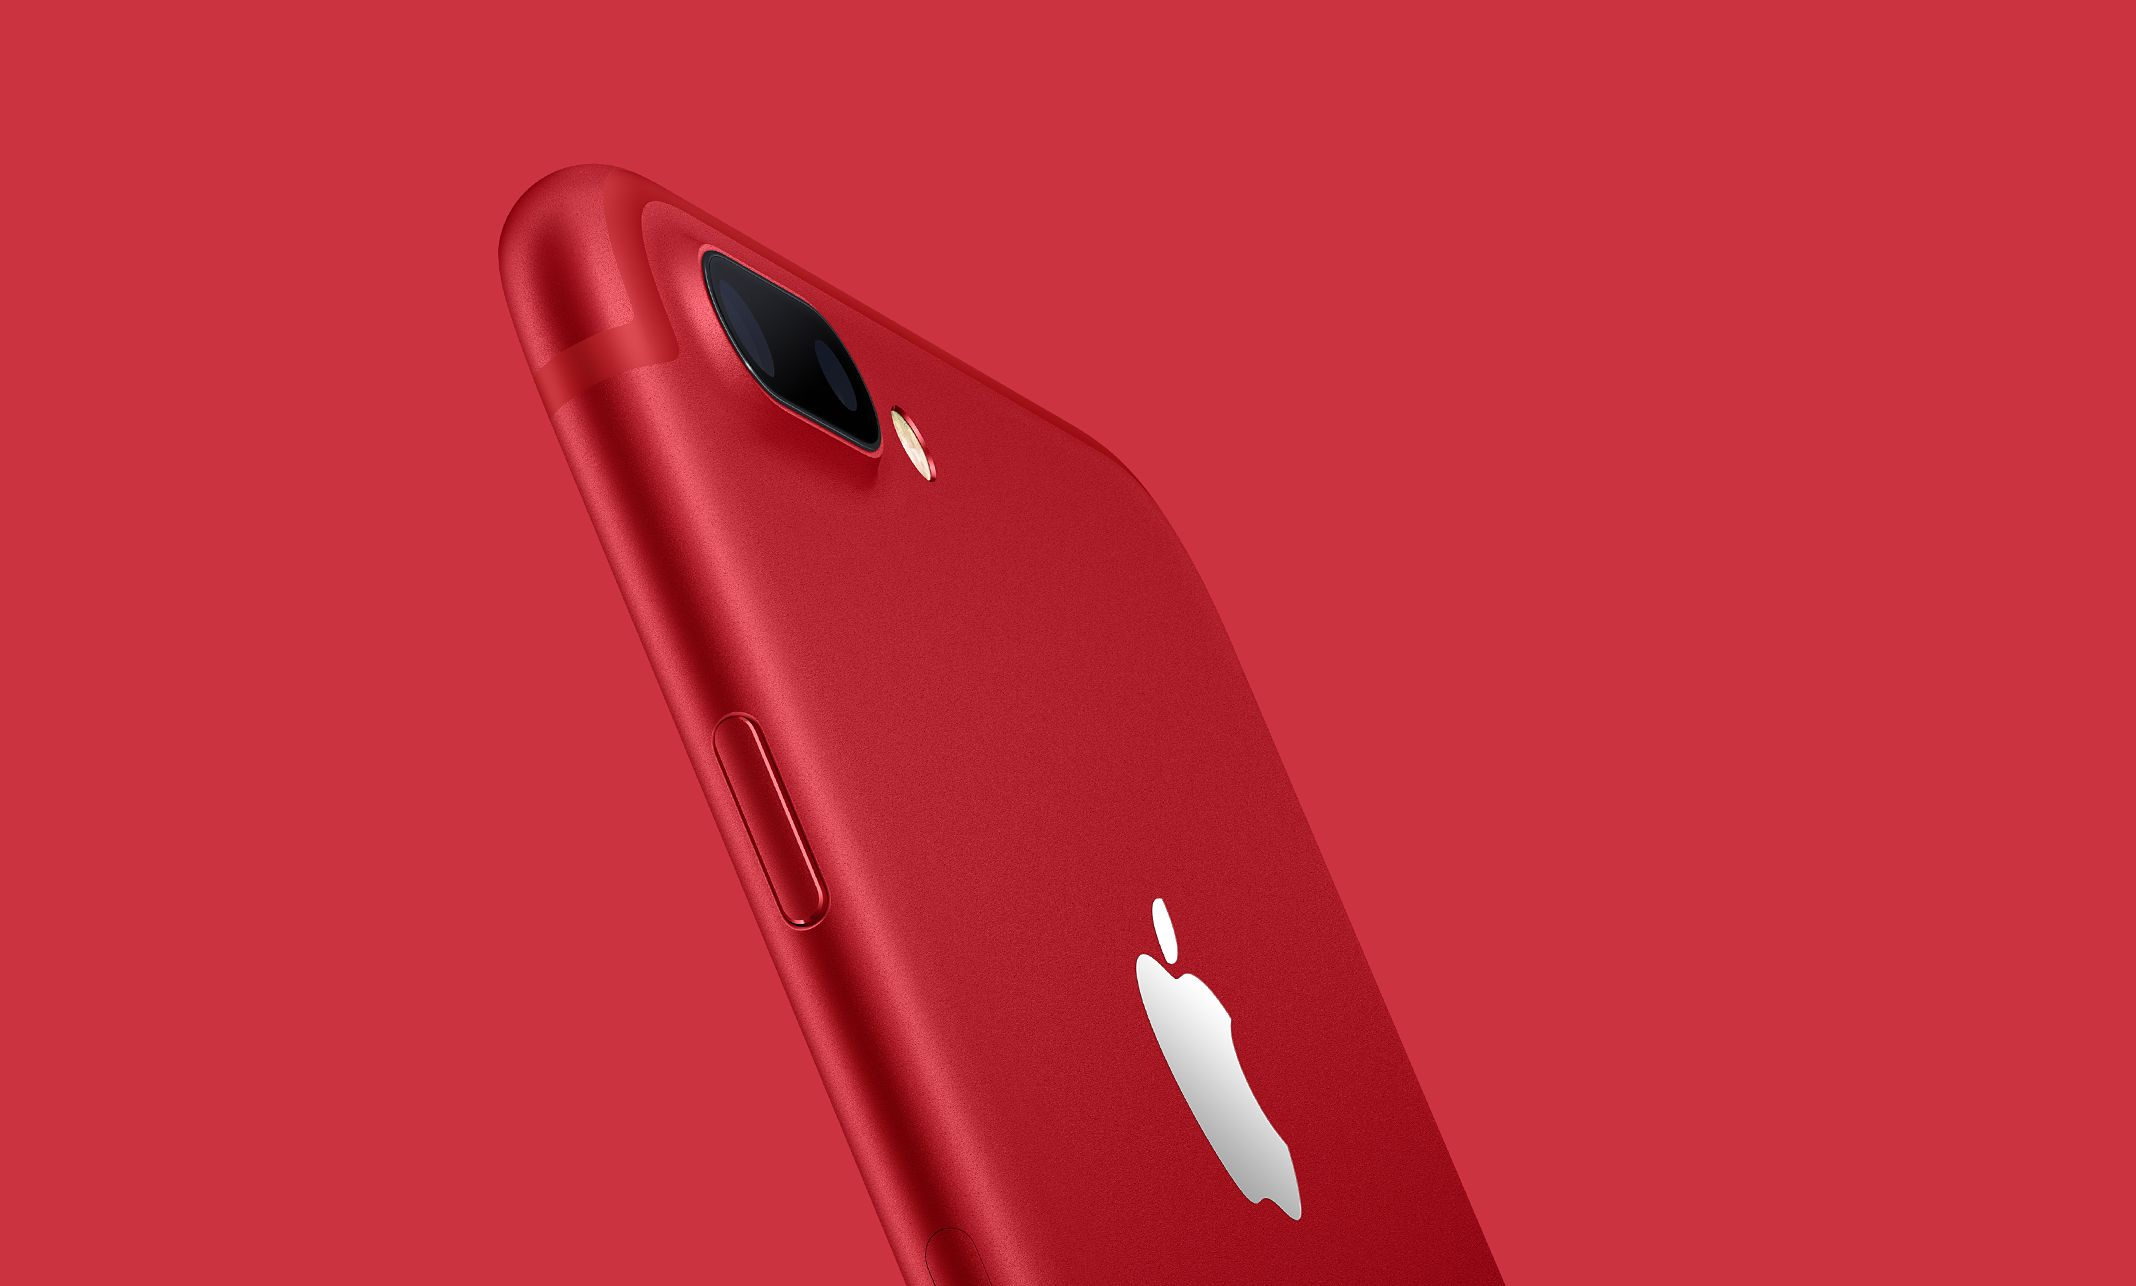 Apple Release New (RED) iPhone 7